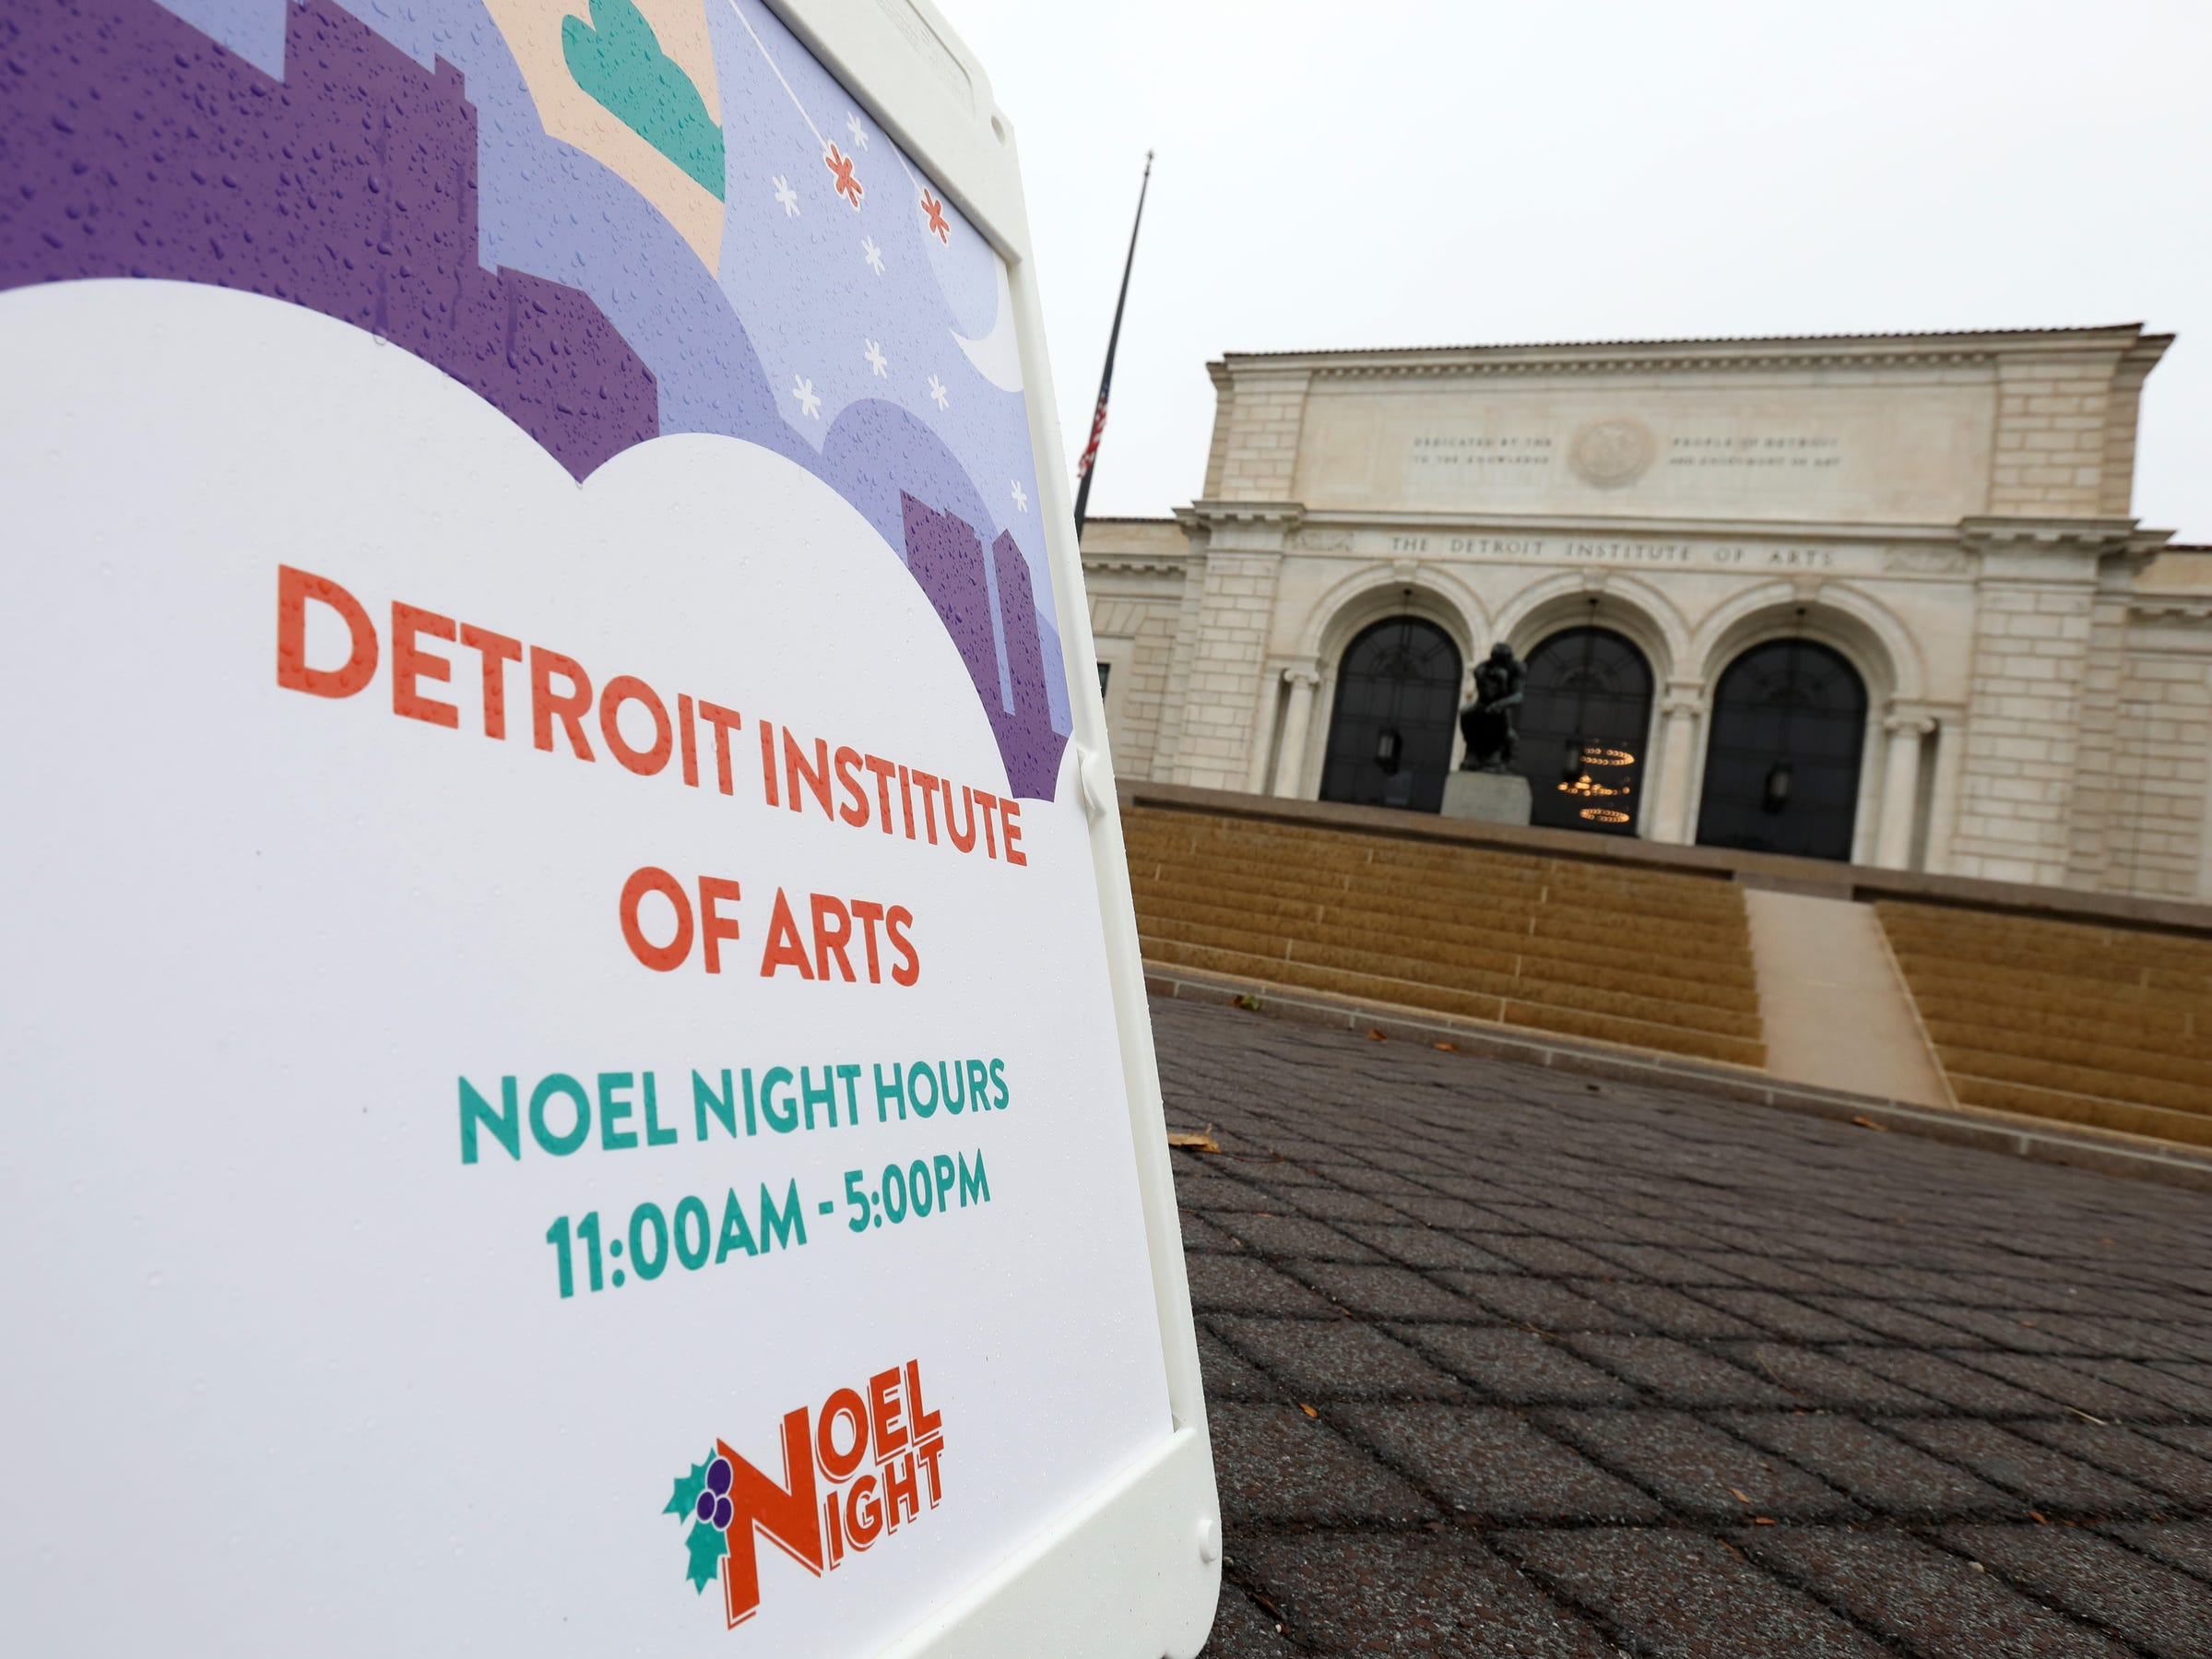 The Detroit Institute of Arts in Detroit on Saturday, December 1, 2018 was one of the venues hosting the daytime part of Noel Night.